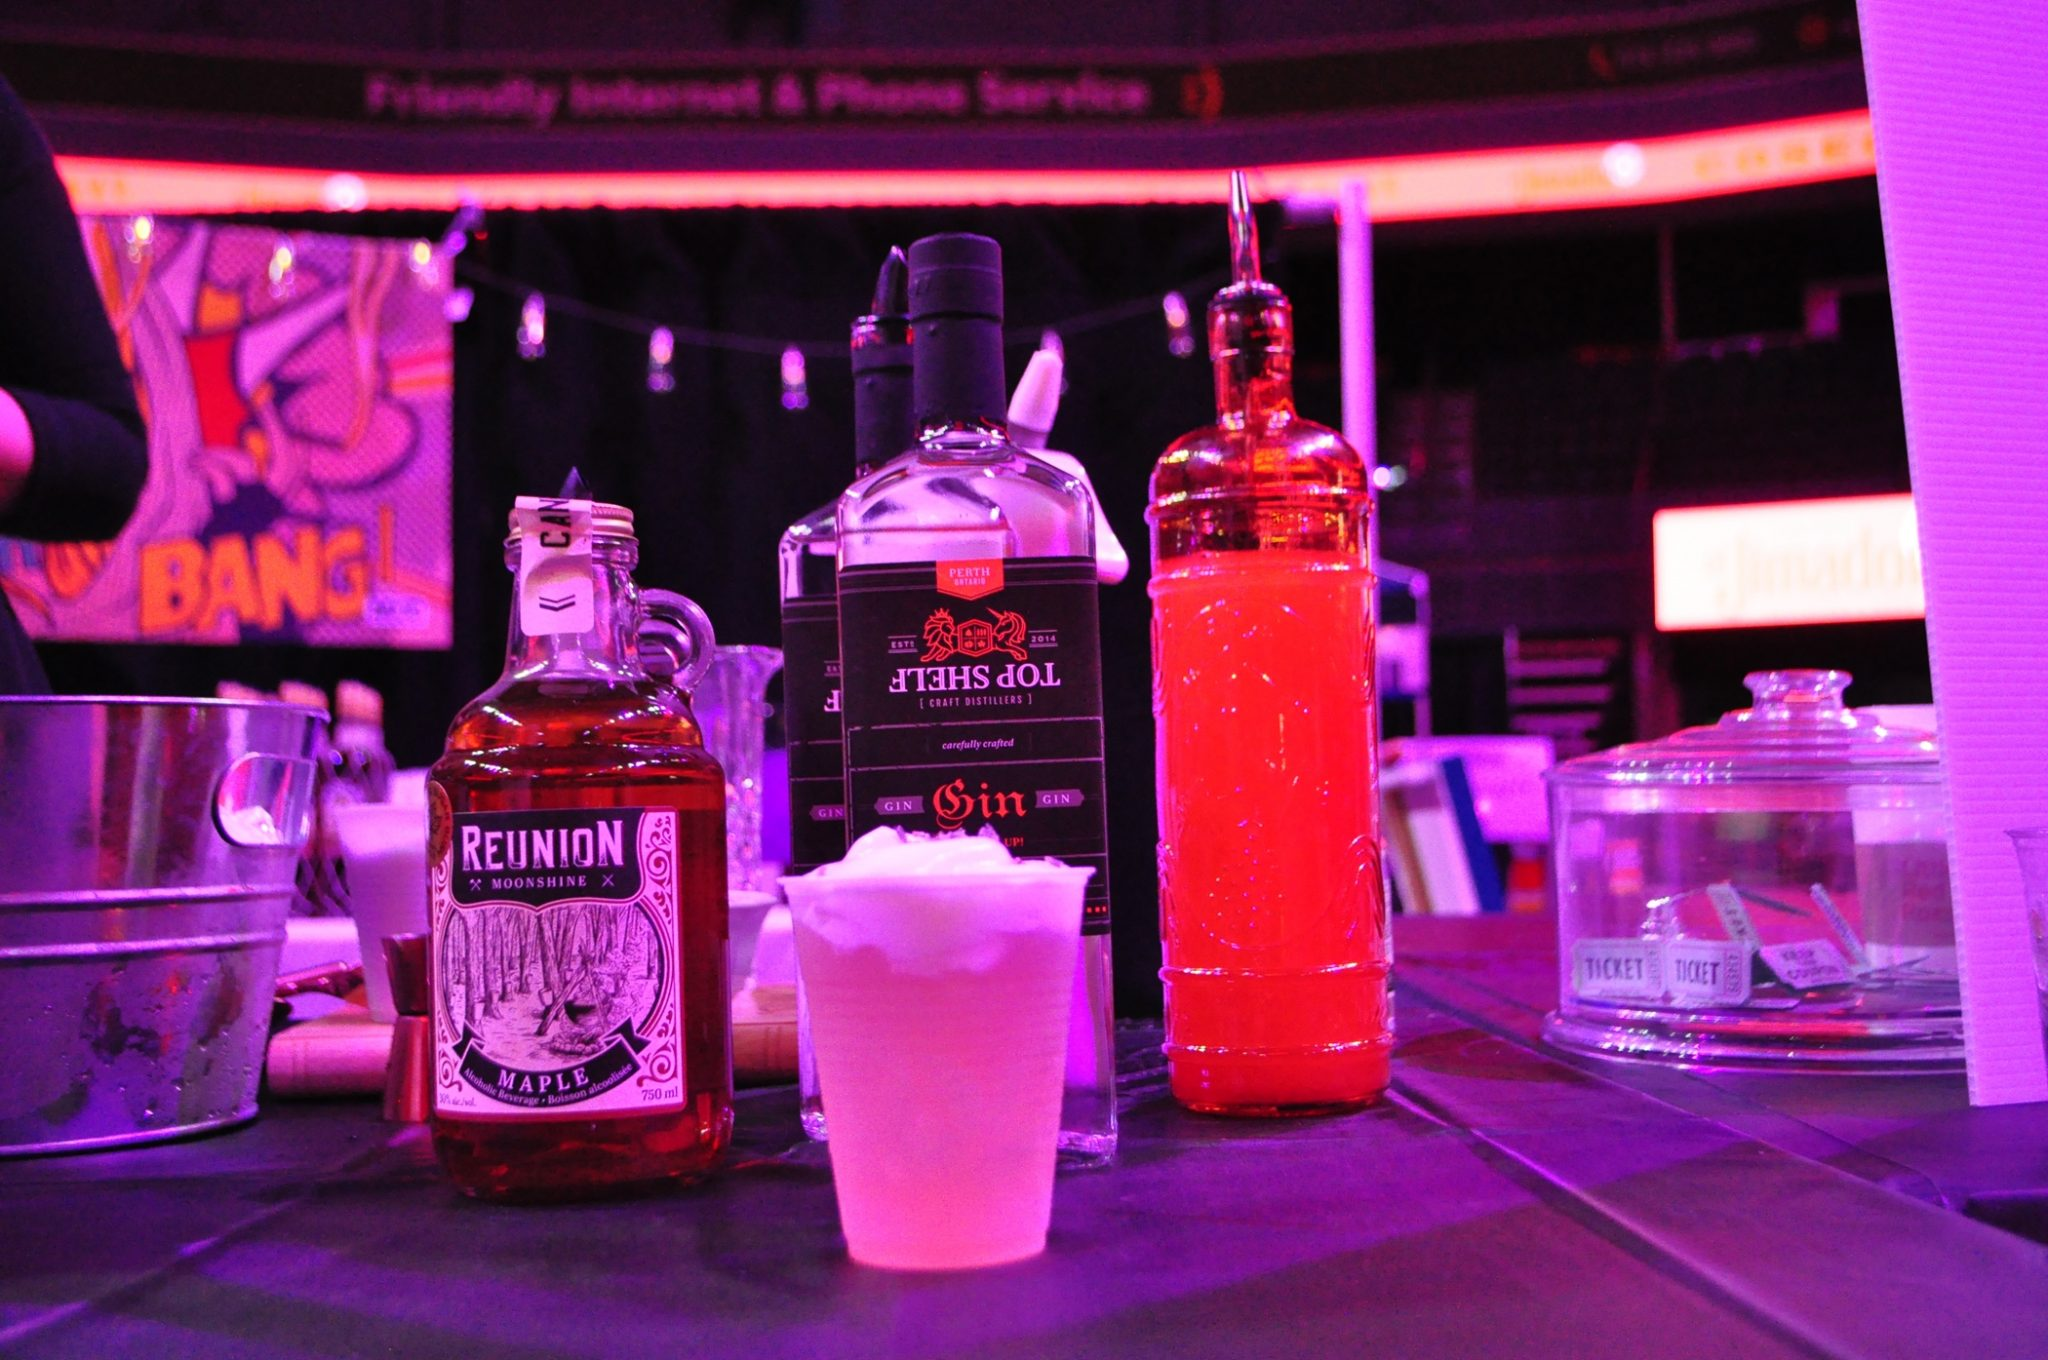 The Cocktail Show had a good mix (get it?) of spirits to brighten everyone's day.